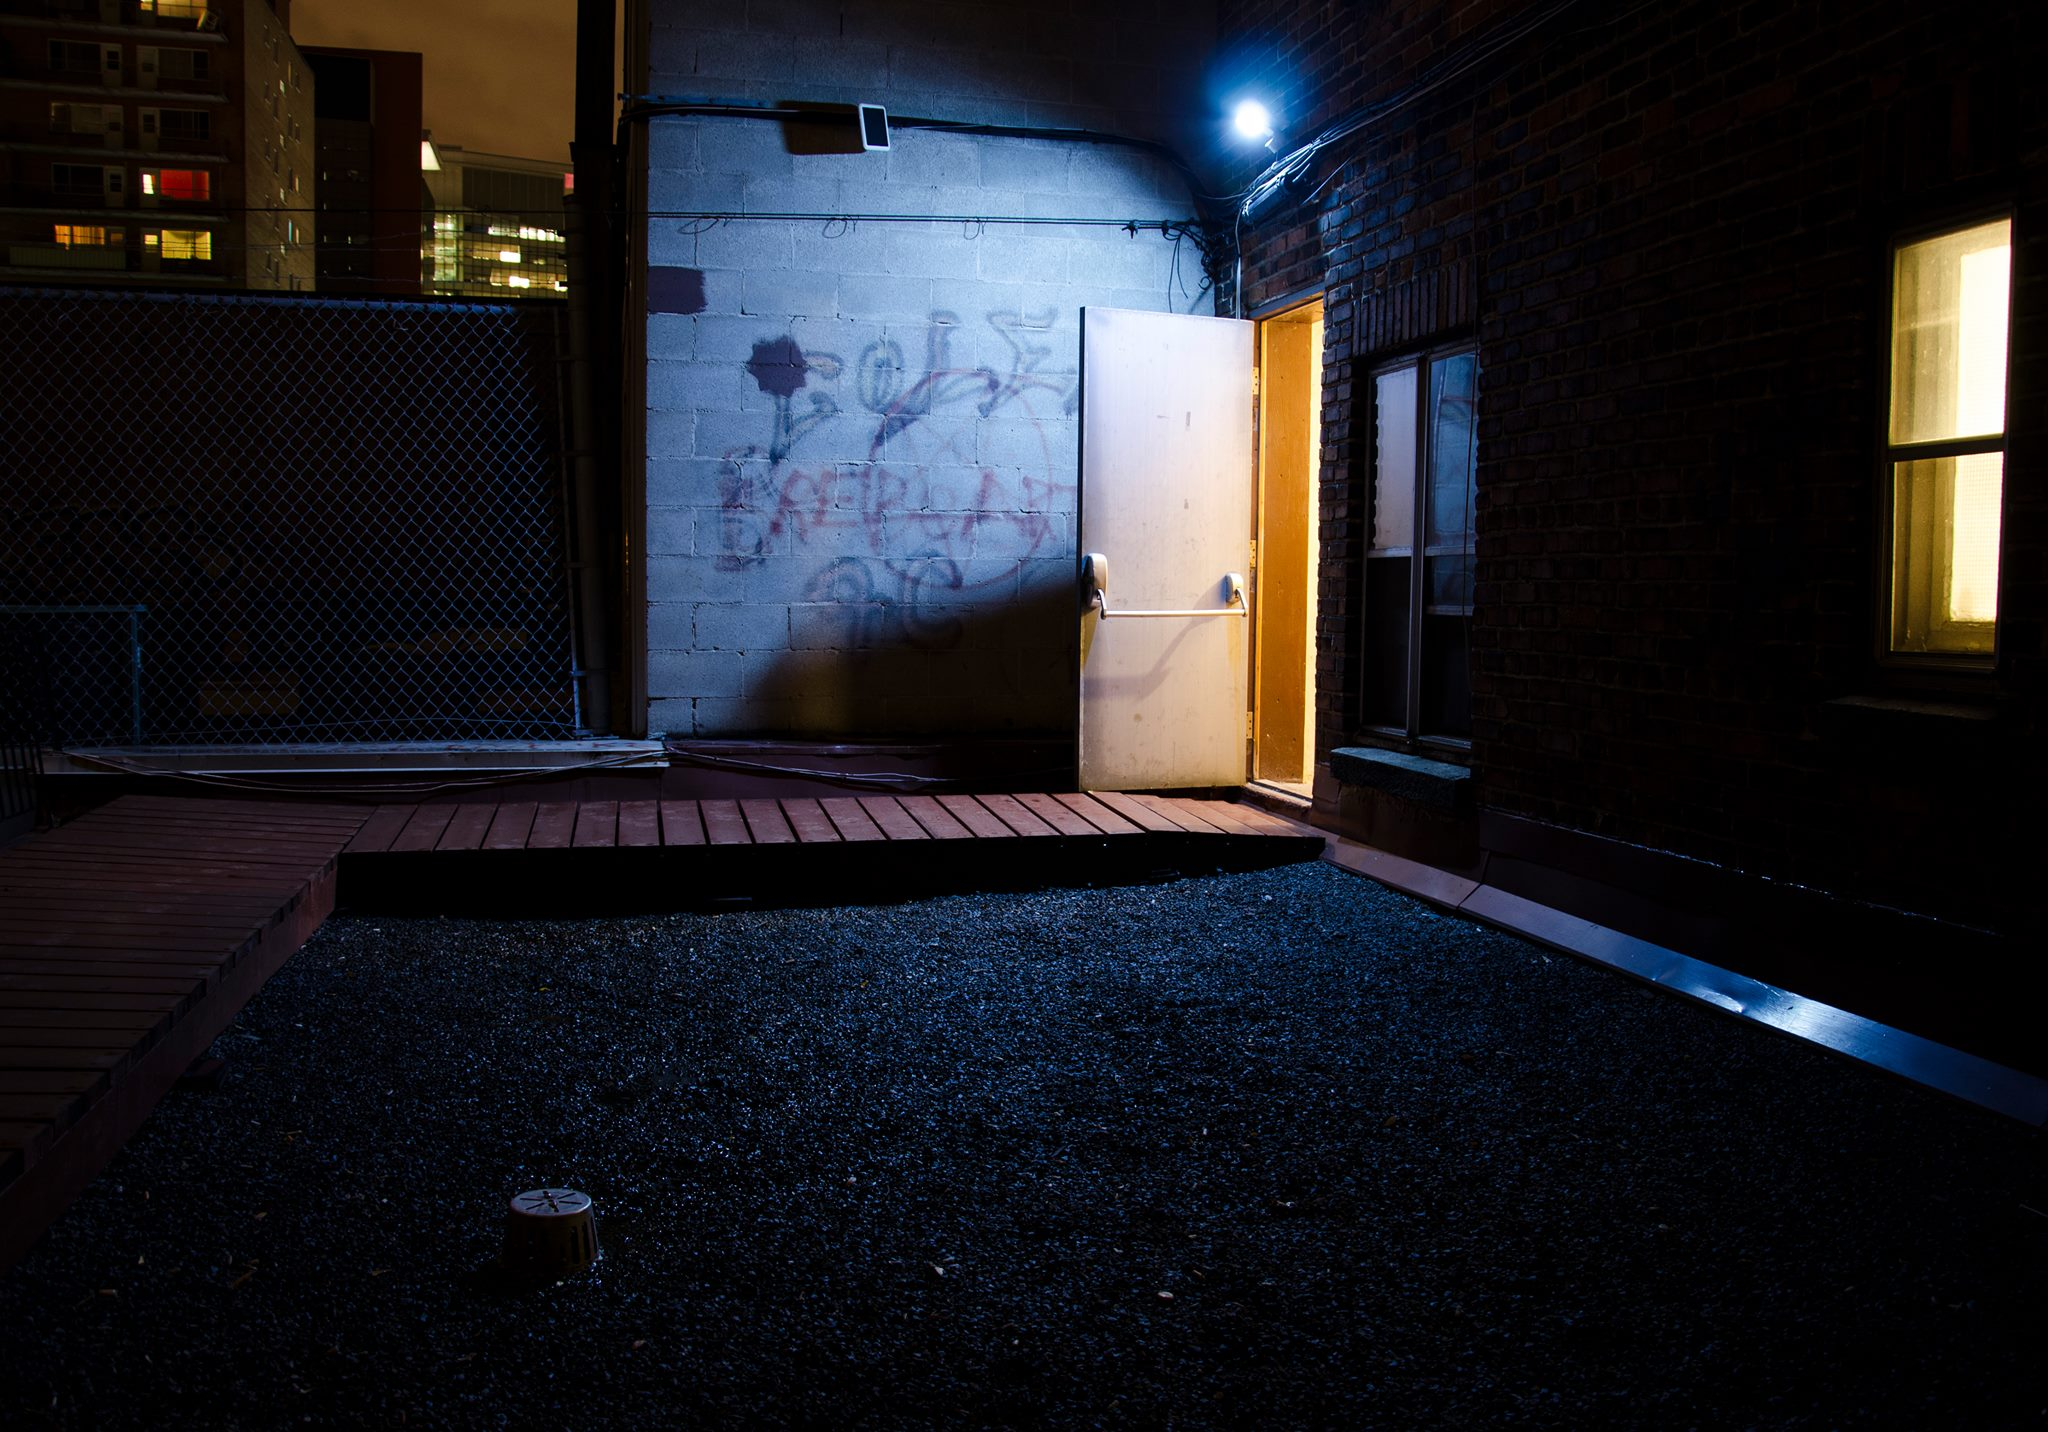 Jenkins, Cheyenne. Back Alley . 2014. Digital Photography. Montreal, Quebec